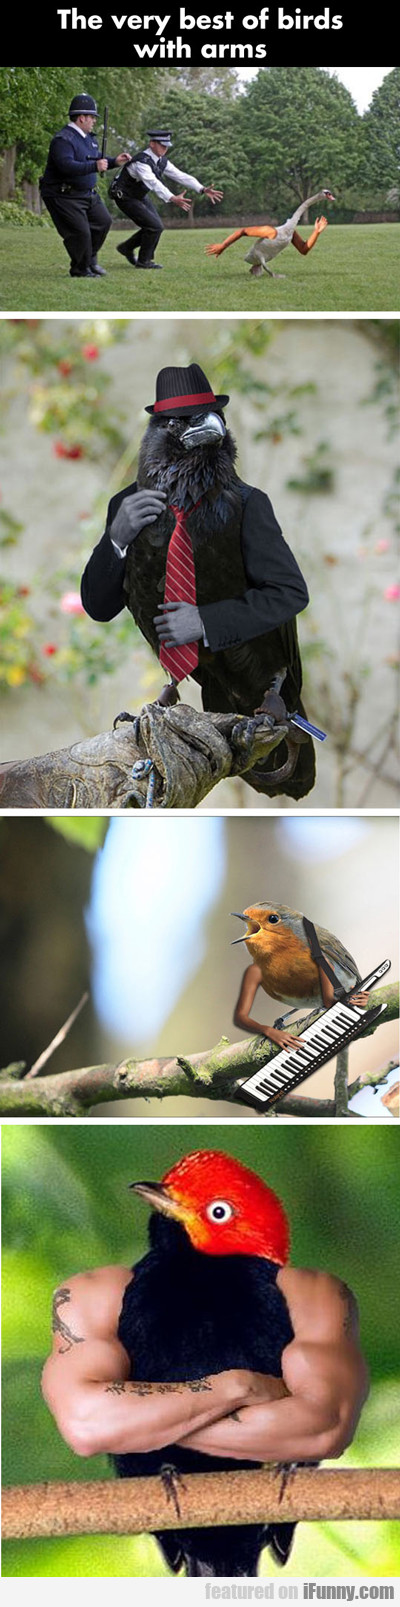 the very best of birds with arms...